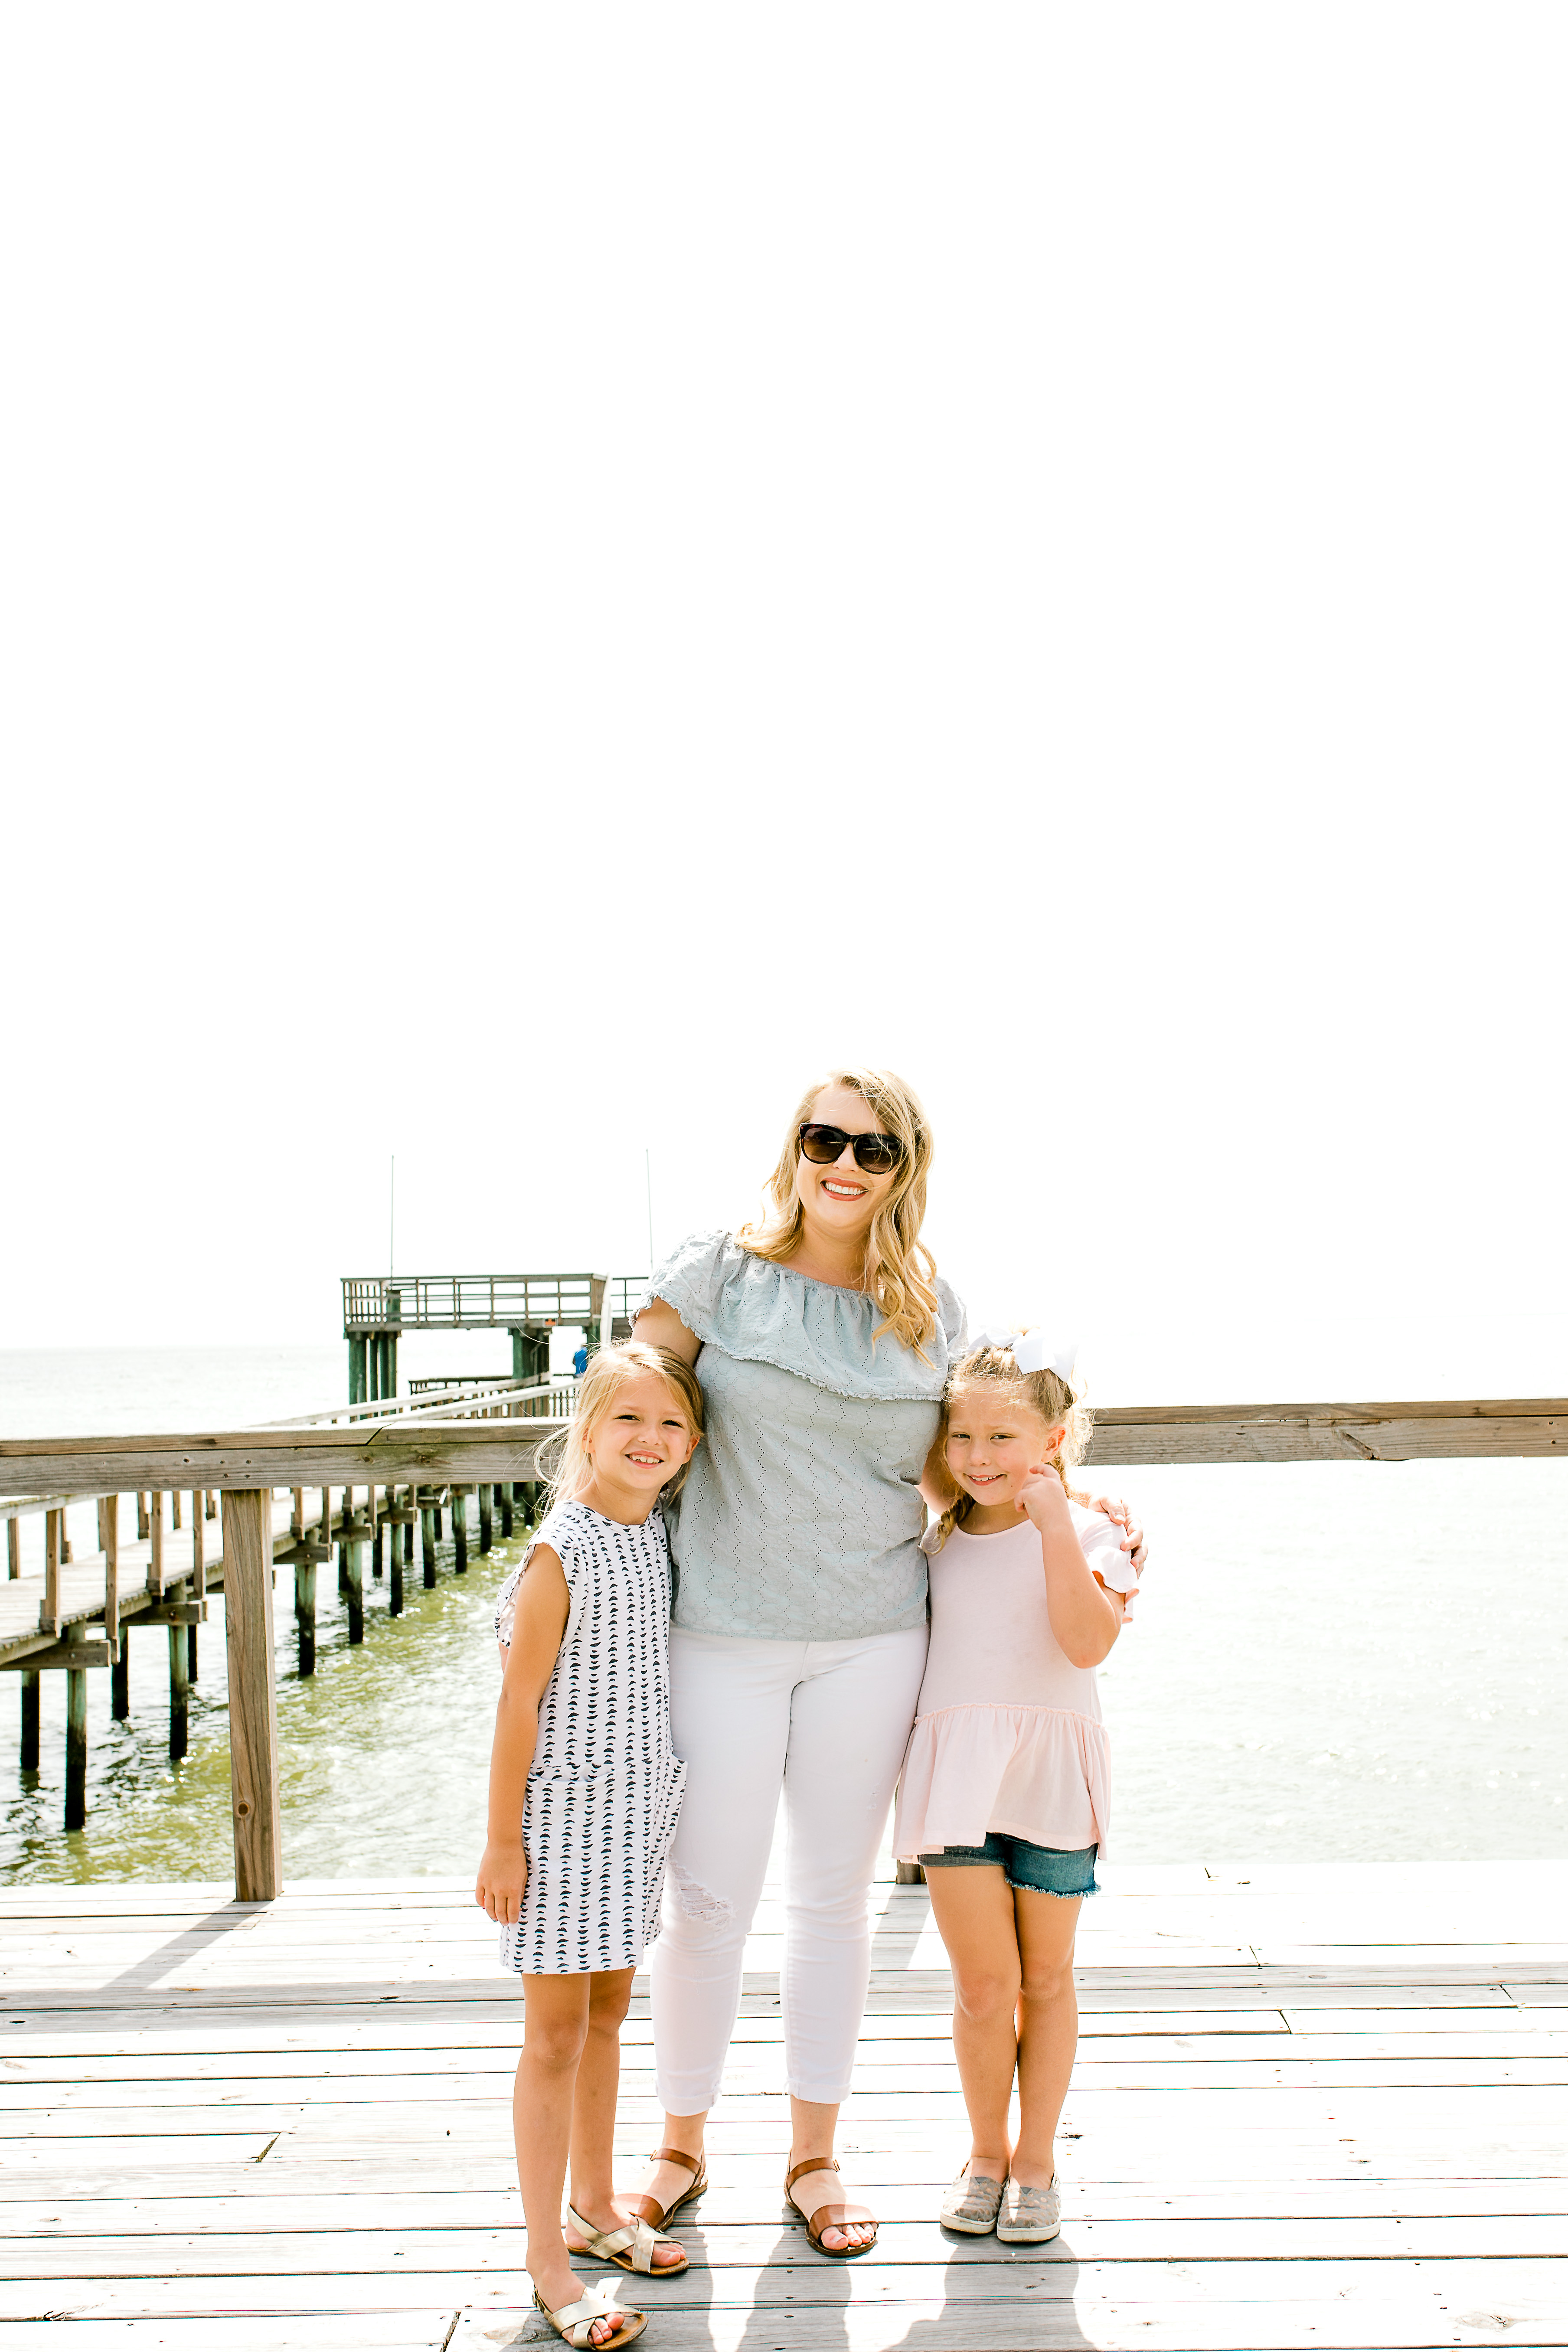 Mom and daughters smiling together on dock near beach.